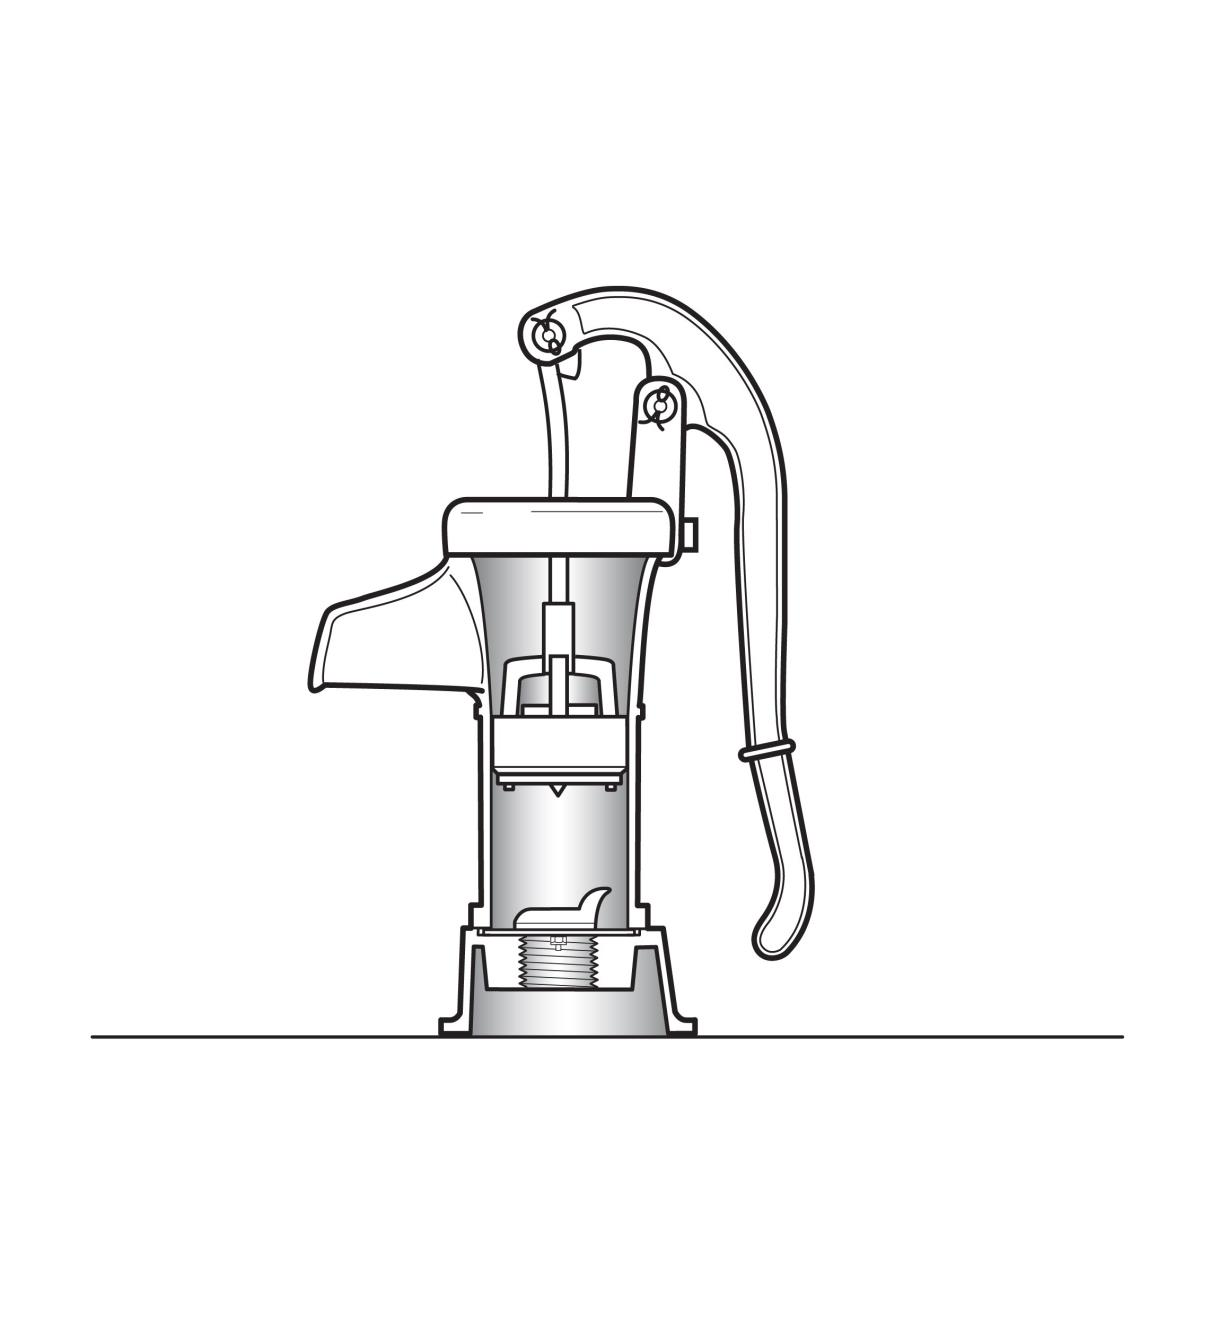 Illustration shows cutaway view of Cast-Iron Pump